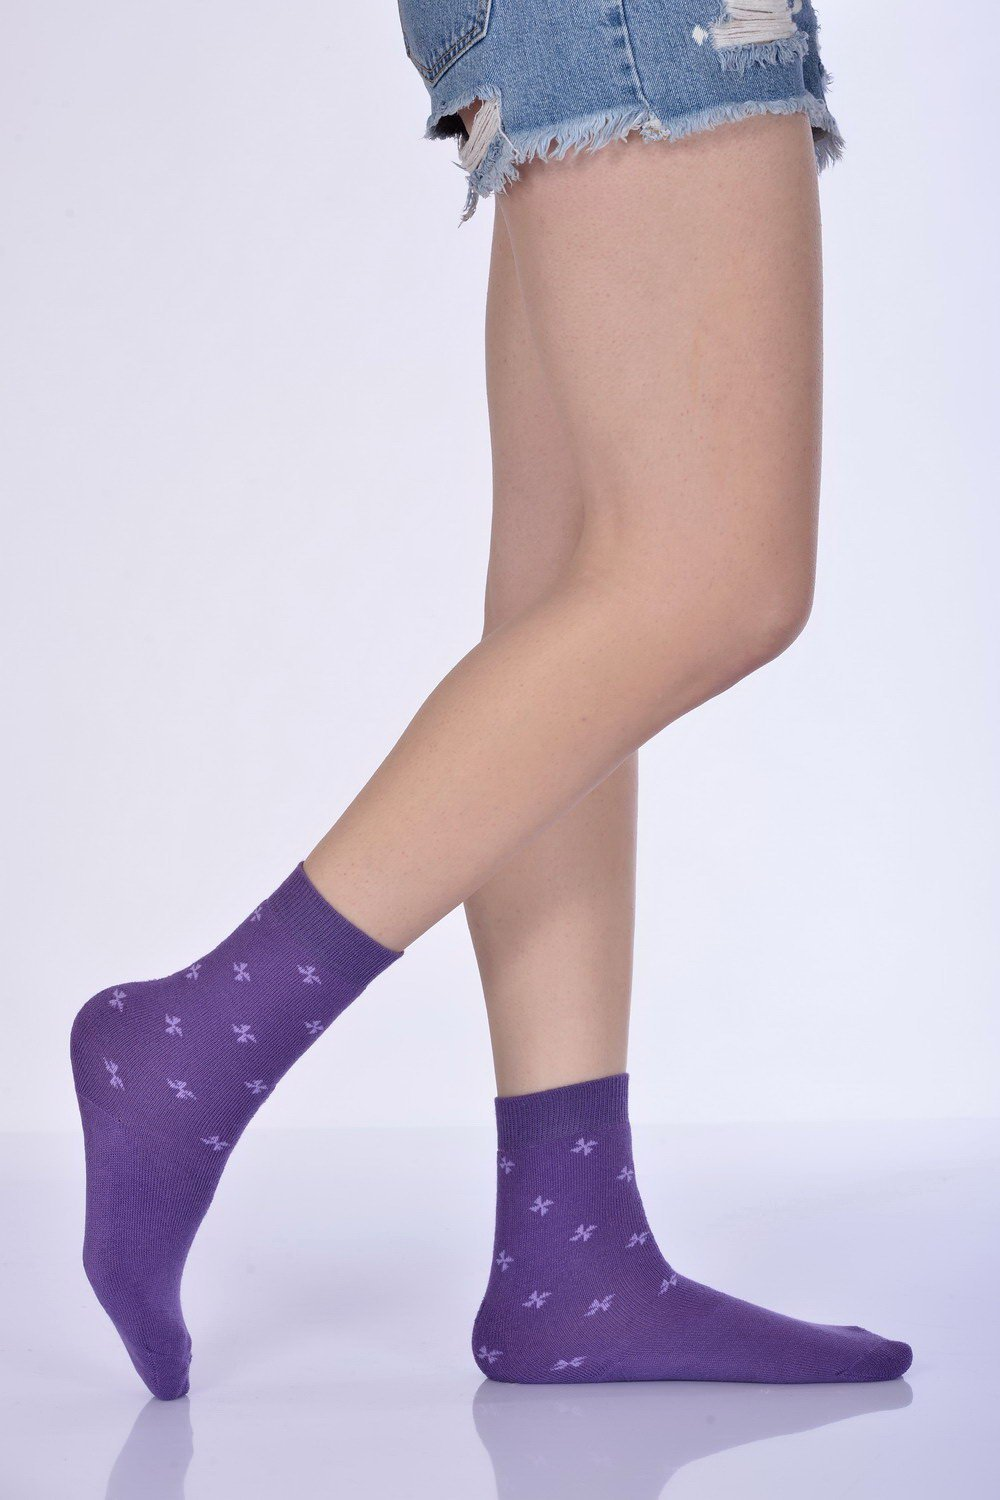 Women's Purple Winter Socket Socks- 3 Pairs